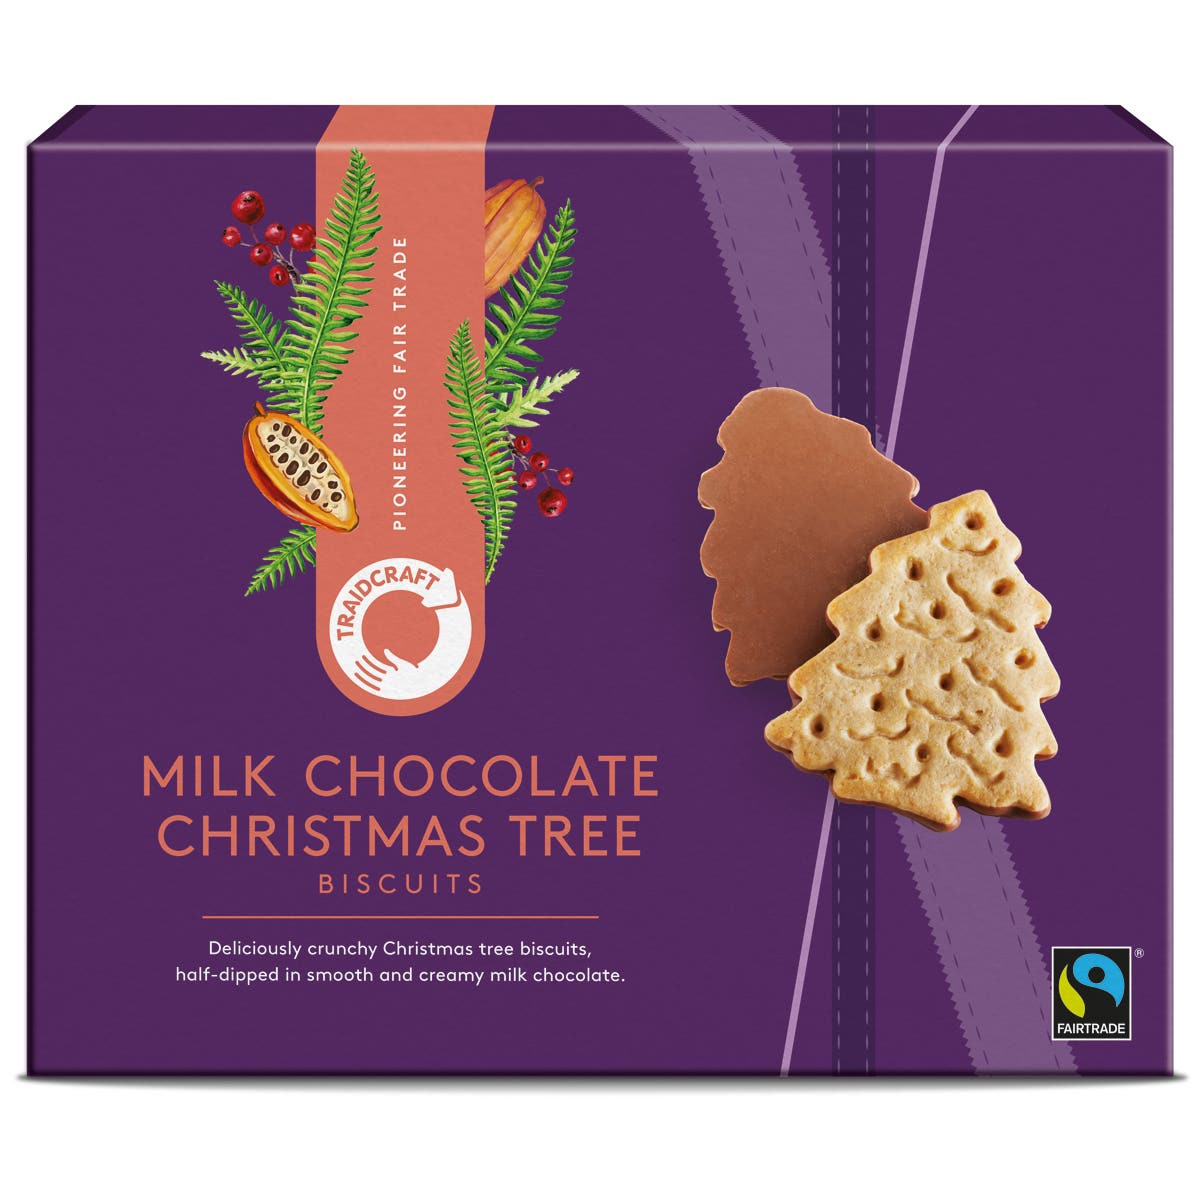 Traidcraft Milk Chocolate Christmas Tree Biscuits (12x200g) CASE